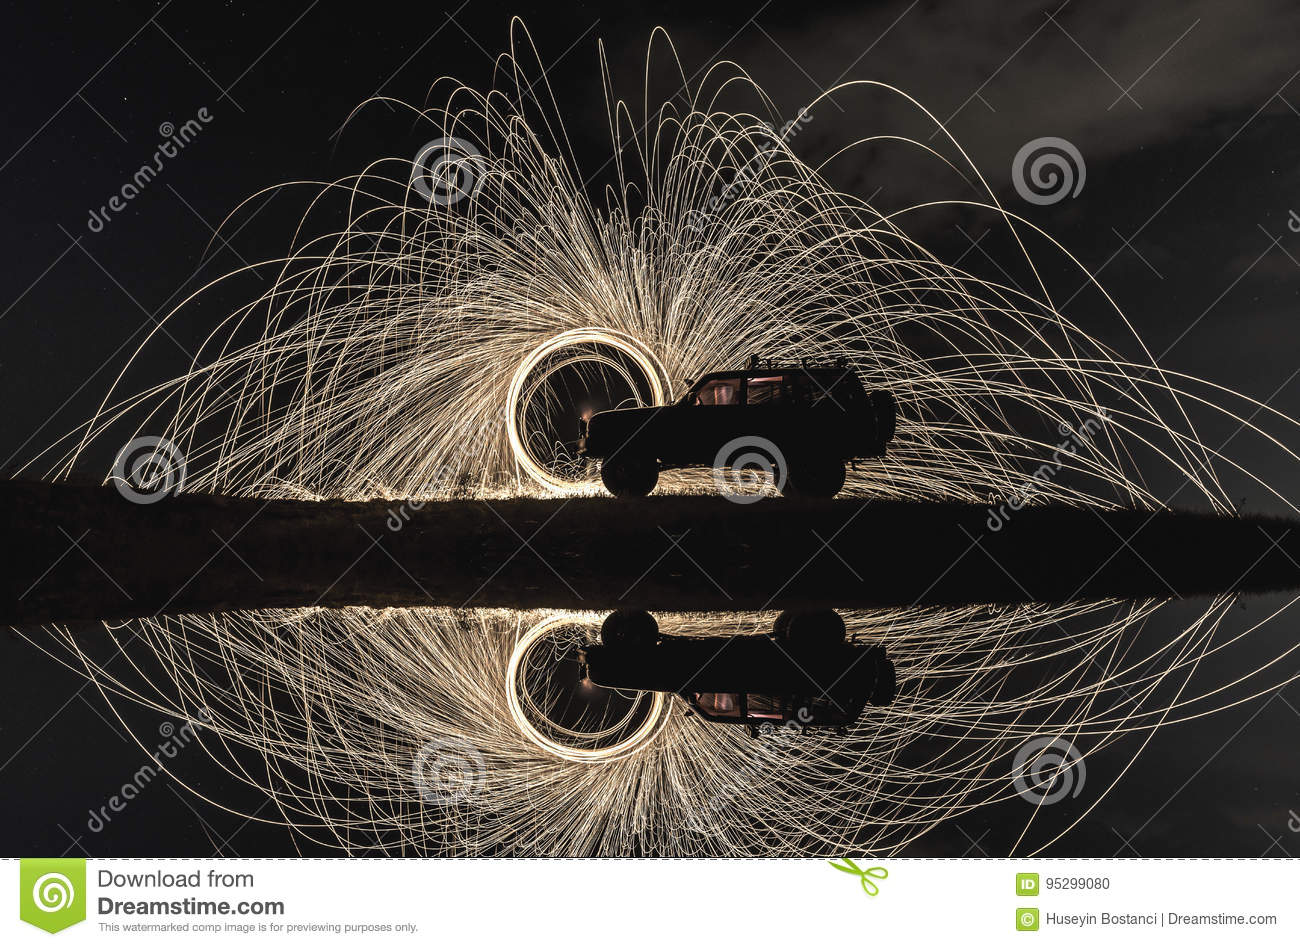 Example of long exposure photography